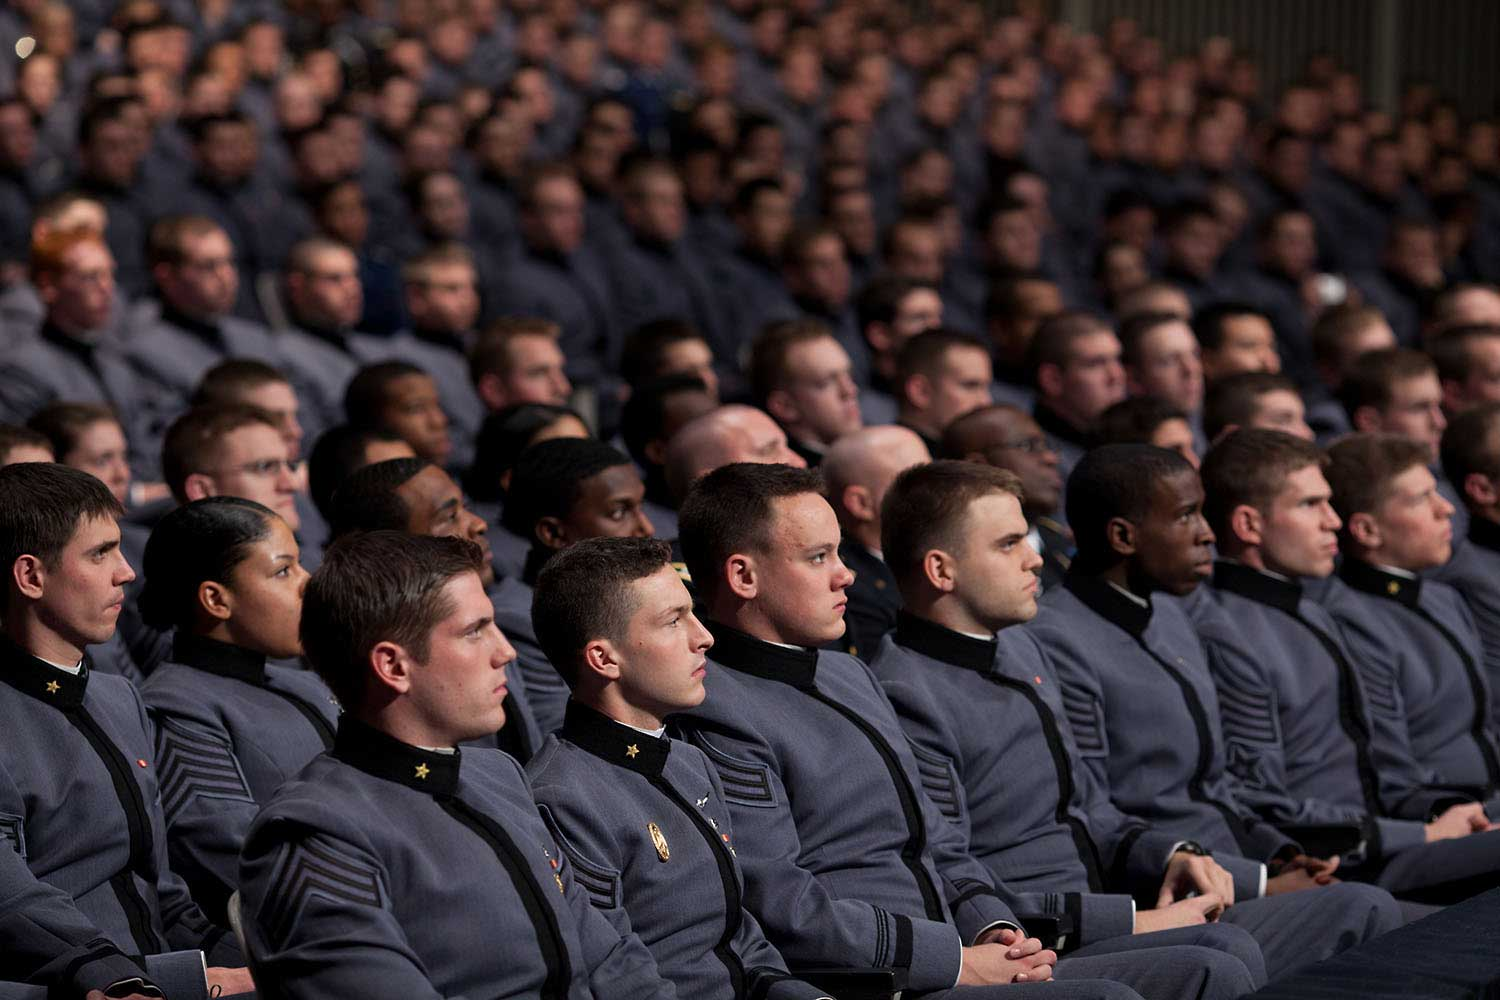 Cadets listen as President Obama delivers his Afghanistan strategy speech at West Point, N.Y., Dec. 1, 2009.